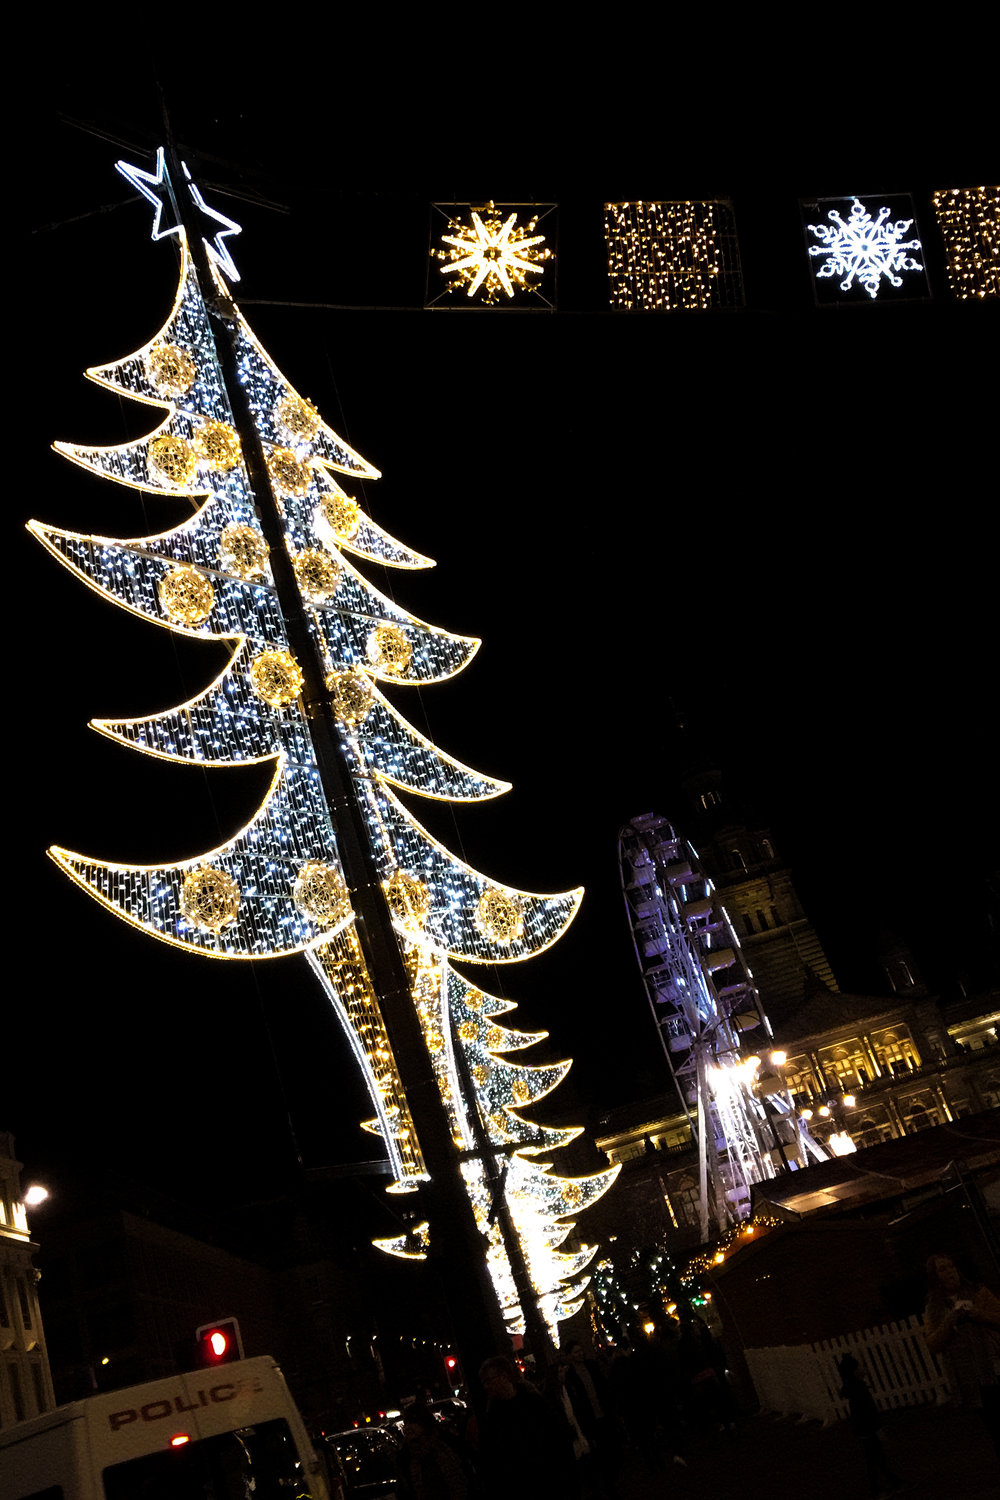 9th December - Christmas lights at George Square